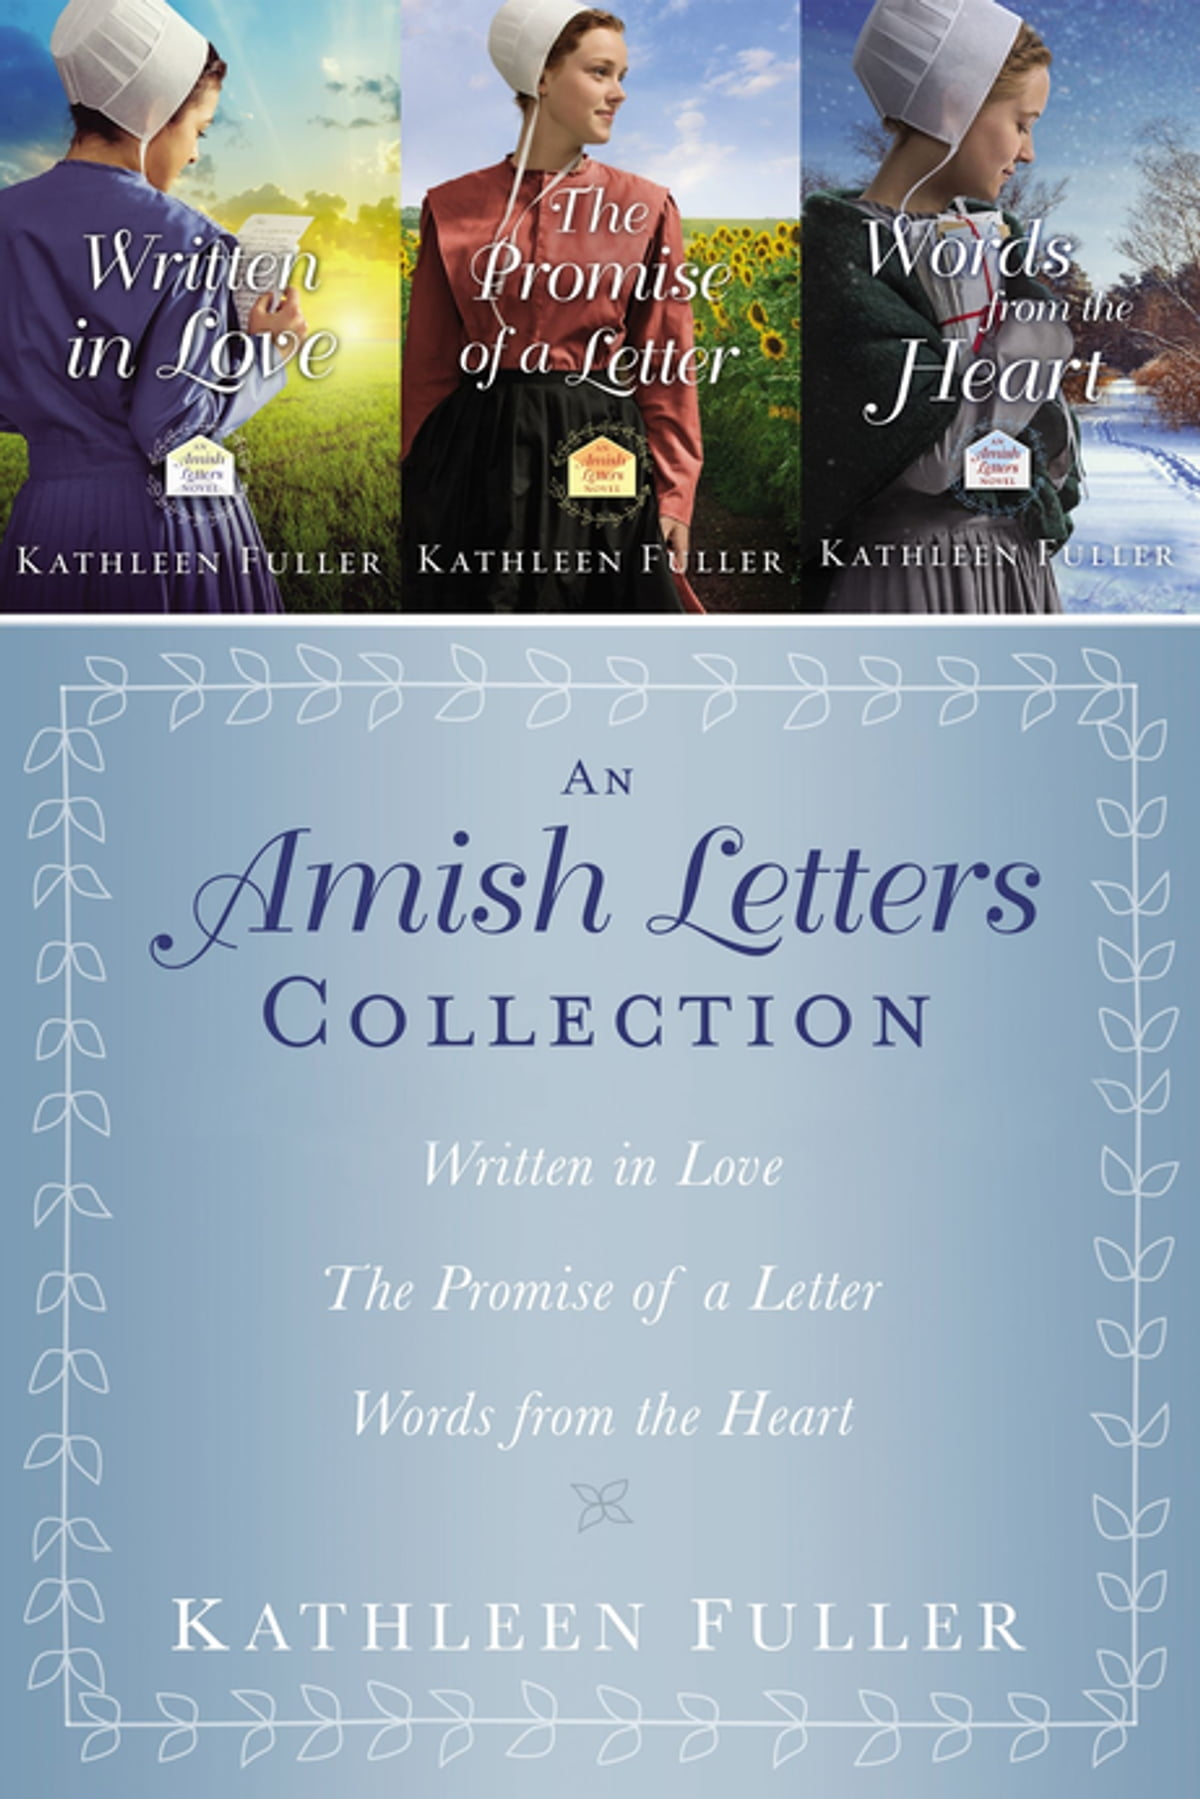 The Amish Letters Collection eBook by Kathleen Fuller - 9780718082581 |  Rakuten Kobo